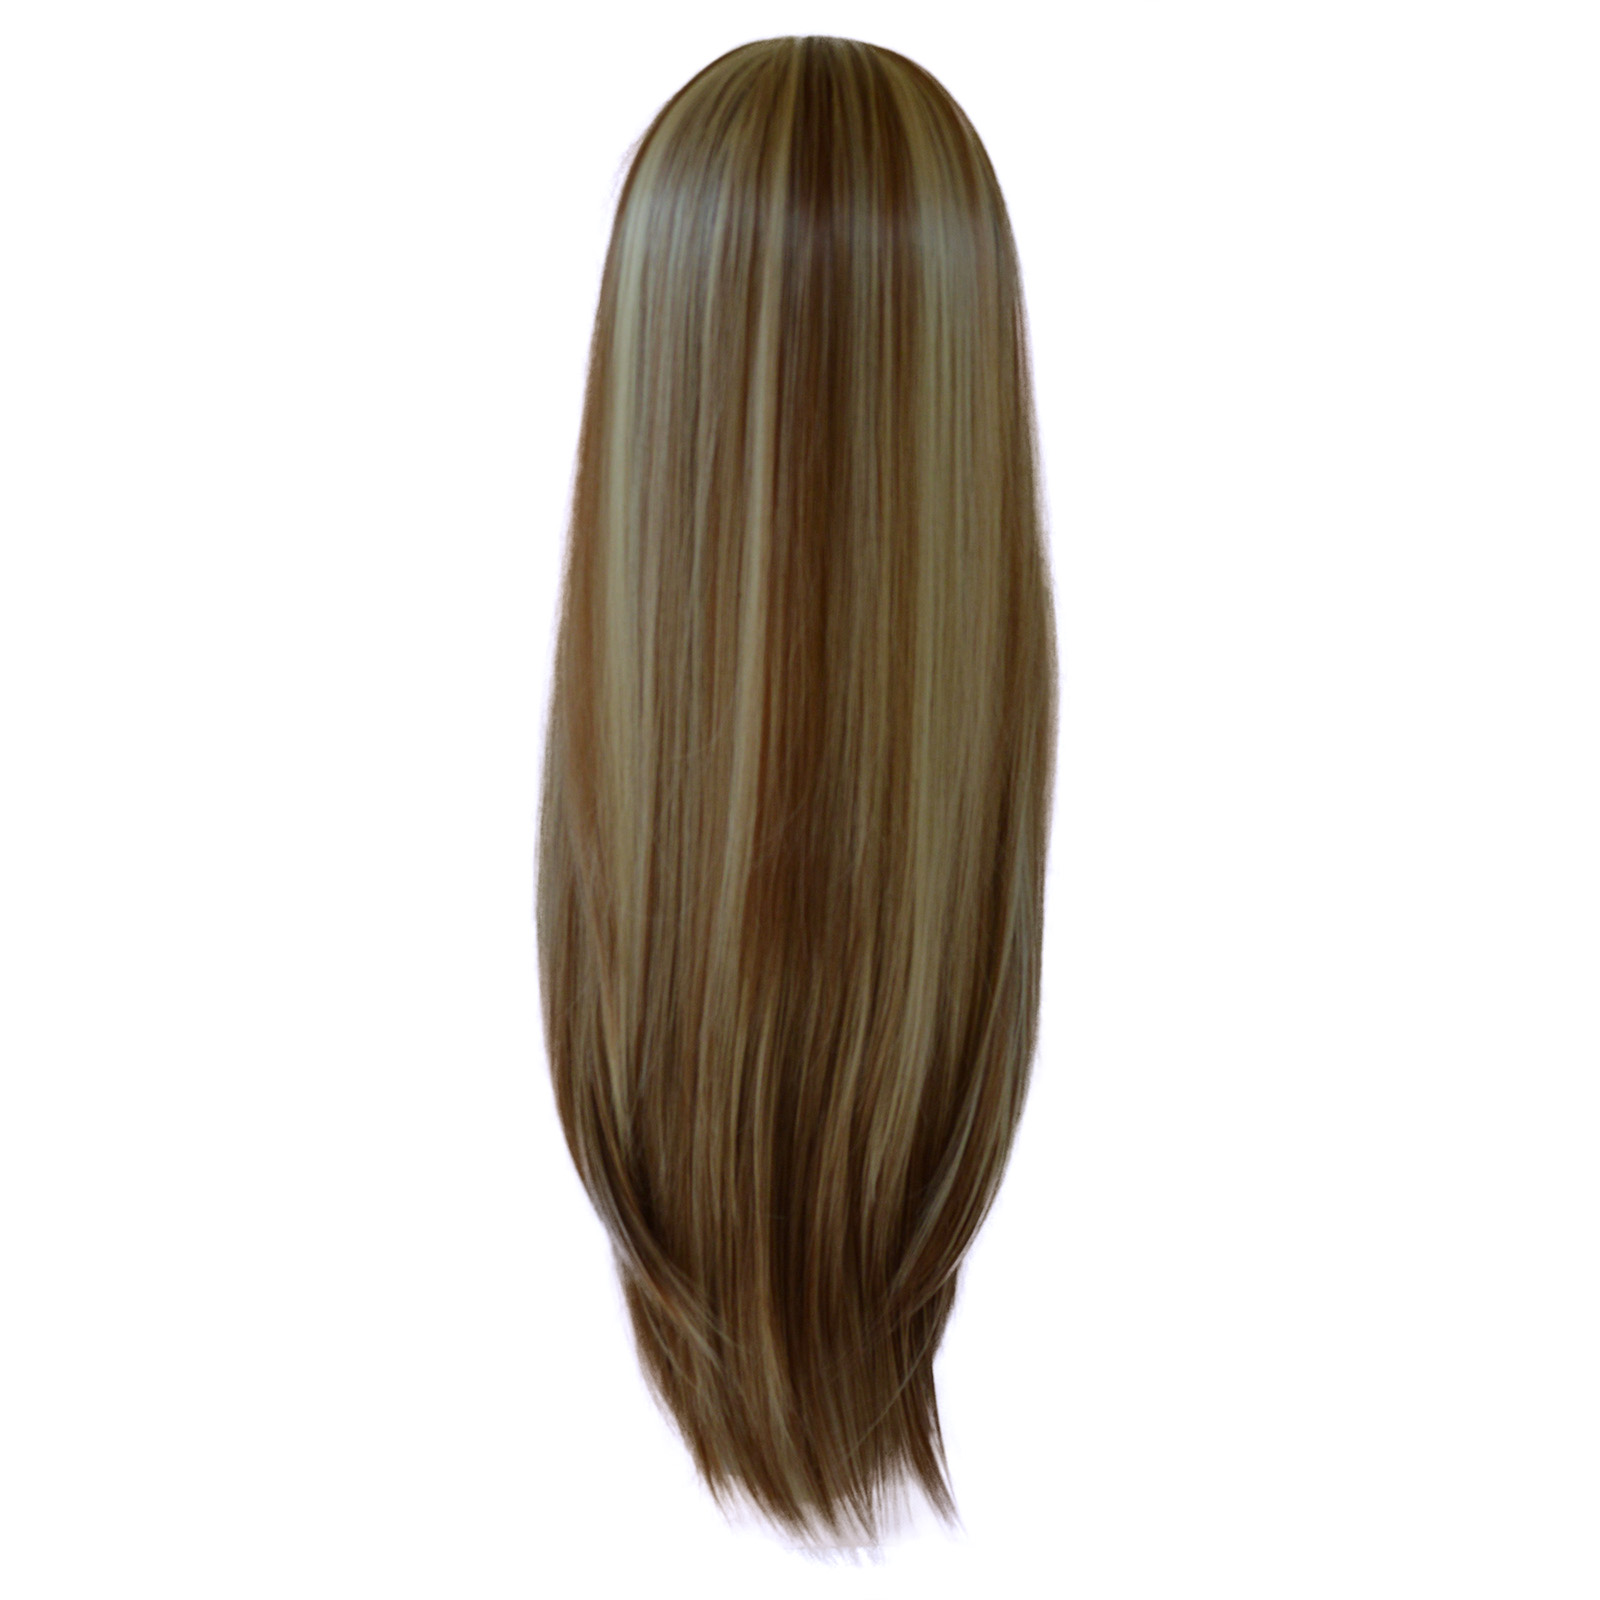 How To Make Hair Silky Straight Naturally